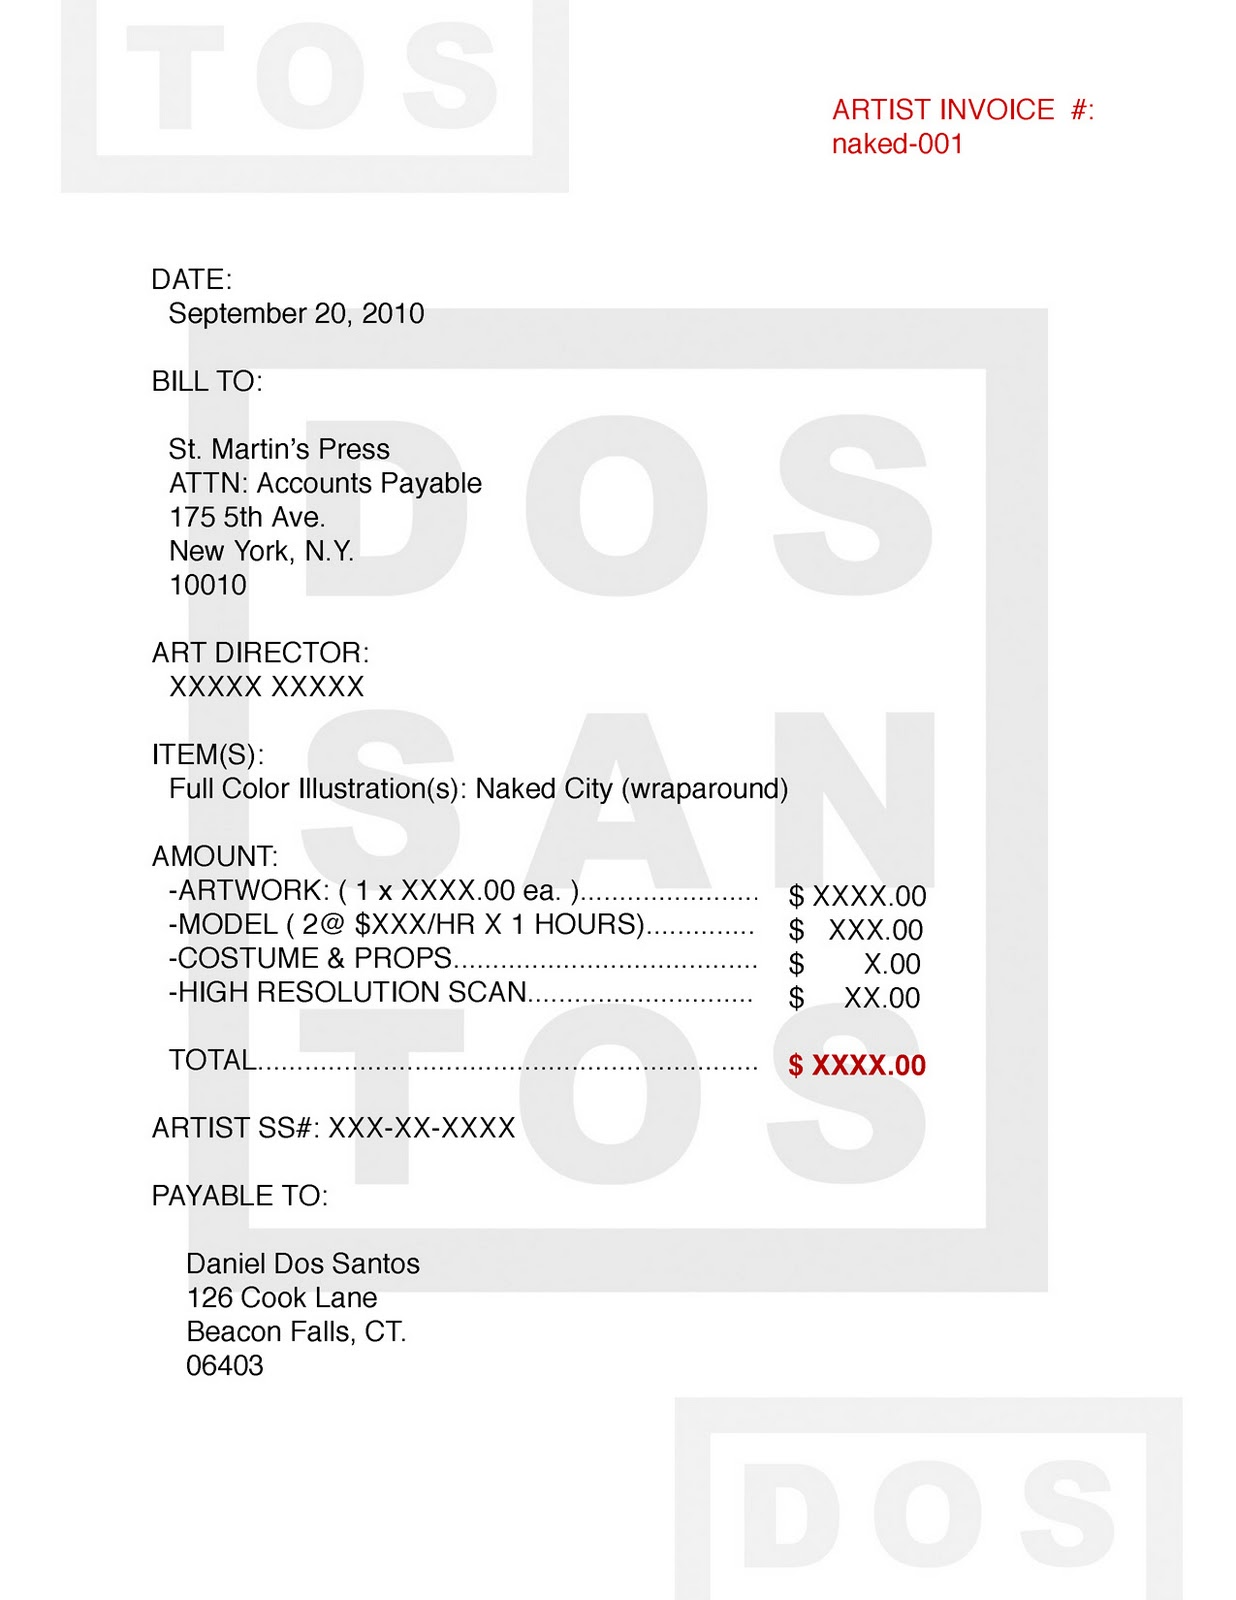 Shopdesignsus  Winsome Muddy Colors Invoices With Heavenly I Believe That This Format Contains All The Pertinent Information That A Good Invoice Should Have And Can Serve As A Decent Template For Your Own With Delightful Burger King Receipt Also Ms Word Receipt Template In Addition Permanent Resident Card Receipt Number And Duplicate Receipt As Well As Receipt For Security Deposit Additionally Scansnap Receipt Software From Muddycolorsblogspotcom With Shopdesignsus  Heavenly Muddy Colors Invoices With Delightful I Believe That This Format Contains All The Pertinent Information That A Good Invoice Should Have And Can Serve As A Decent Template For Your Own And Winsome Burger King Receipt Also Ms Word Receipt Template In Addition Permanent Resident Card Receipt Number From Muddycolorsblogspotcom